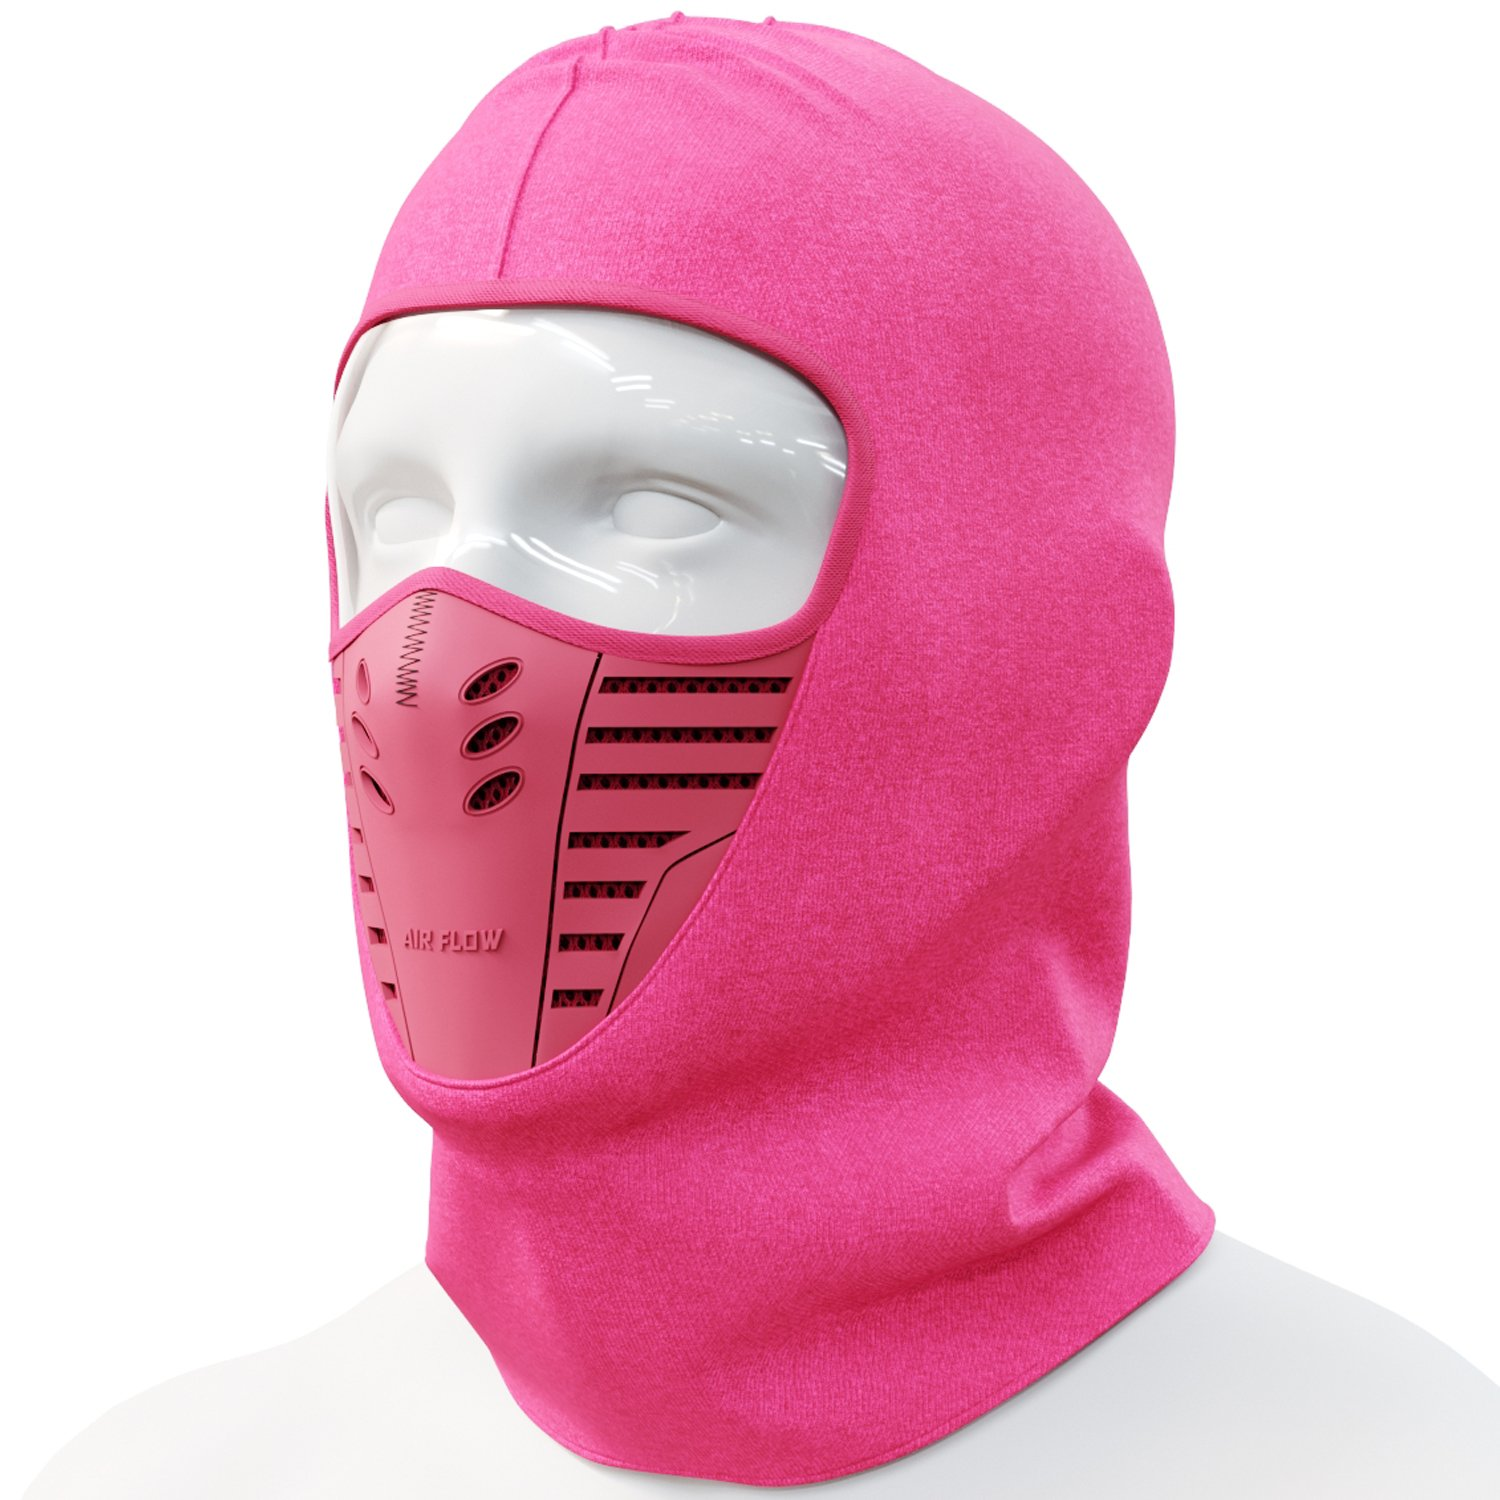 Cevillo Balaclava Face Mask | Wind Resistant and Dustproof Ski Mask Hoodie Style | Skiing and Outdoor Sports | Polyester Cotton Headwear | Men and Women